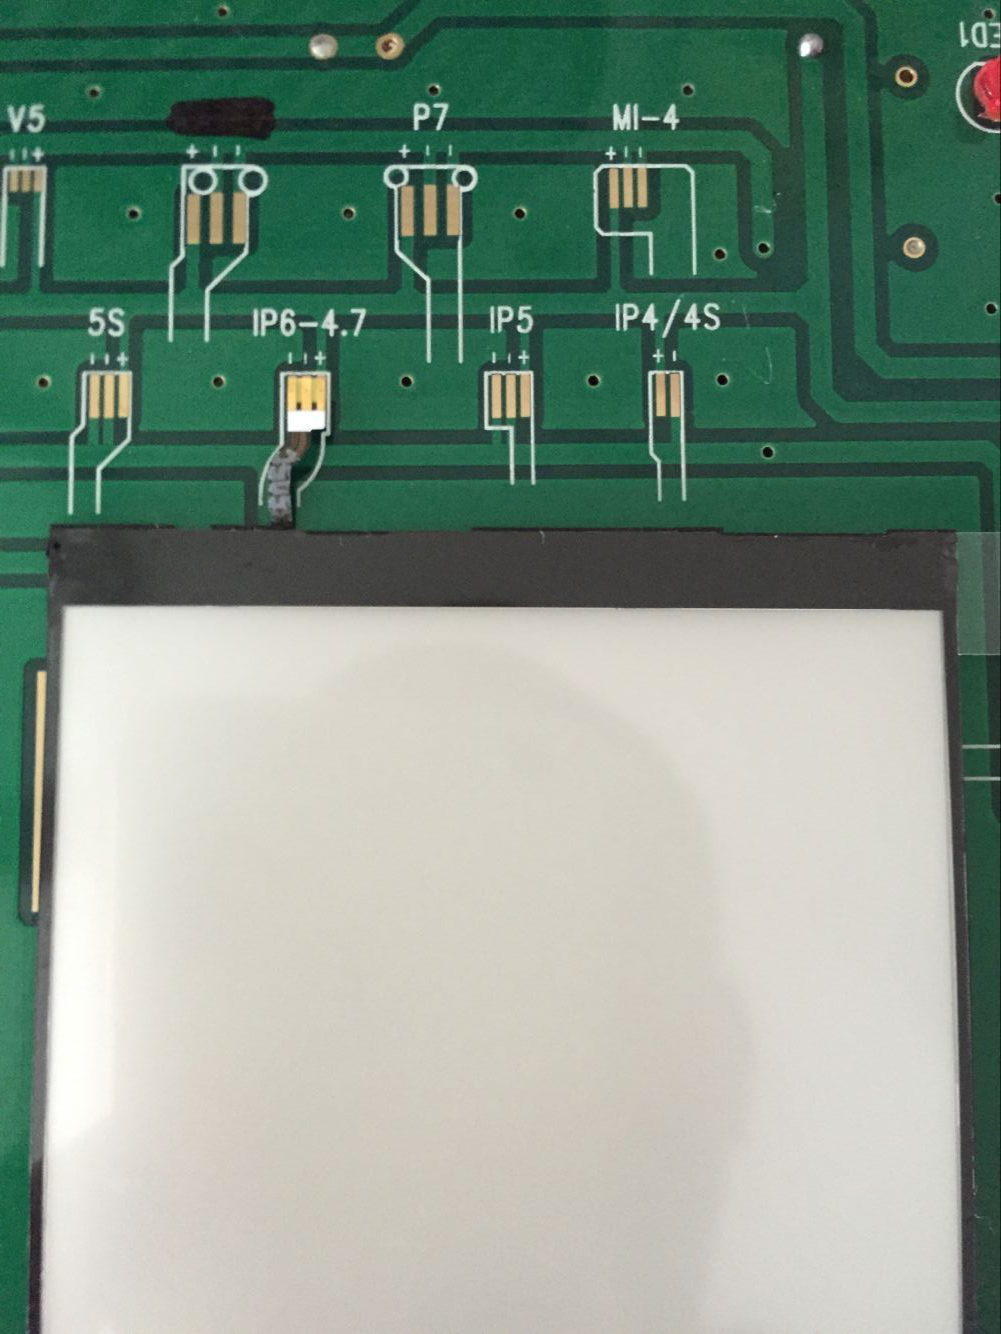 LCD Backlight Test Board For Iphone 4/4s/5/5s/6/6 plus/6s/7/7 plus